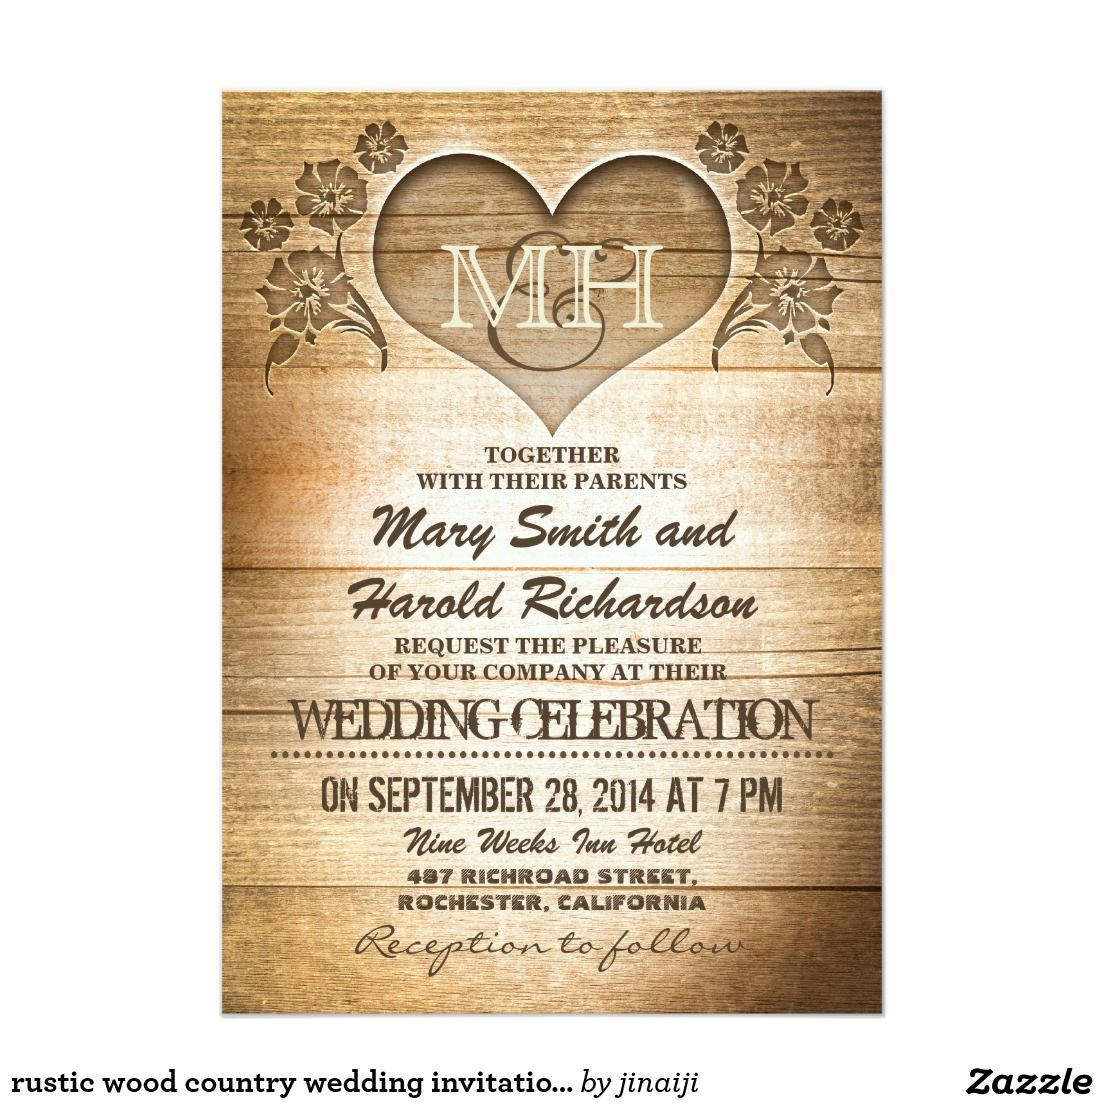 Rustic wood country wedding invitations | Pinterest | Country ...